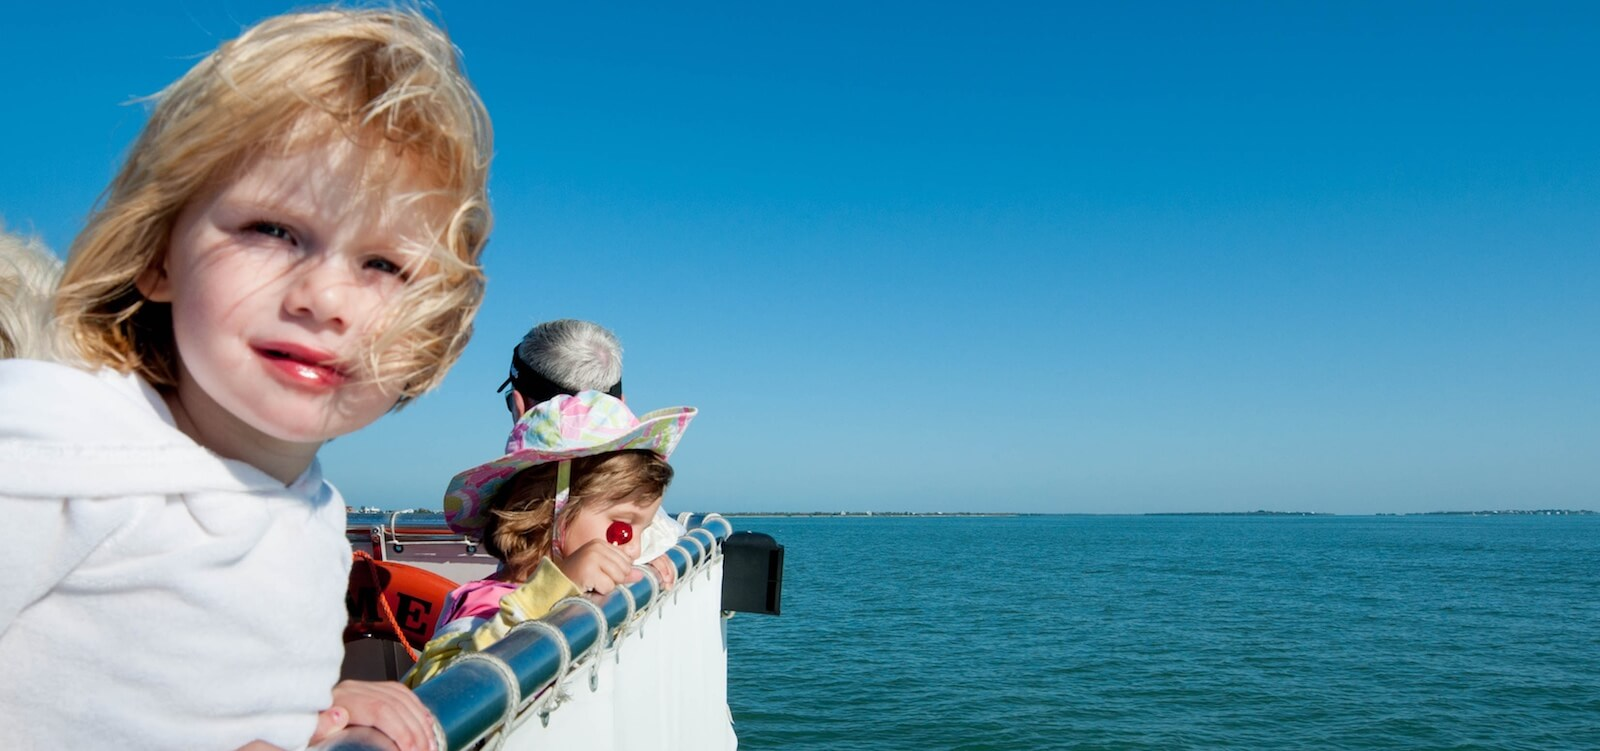 MustDo.com | Sanibel, Captiva, and Fort Myers sightseeing tours and cruises.